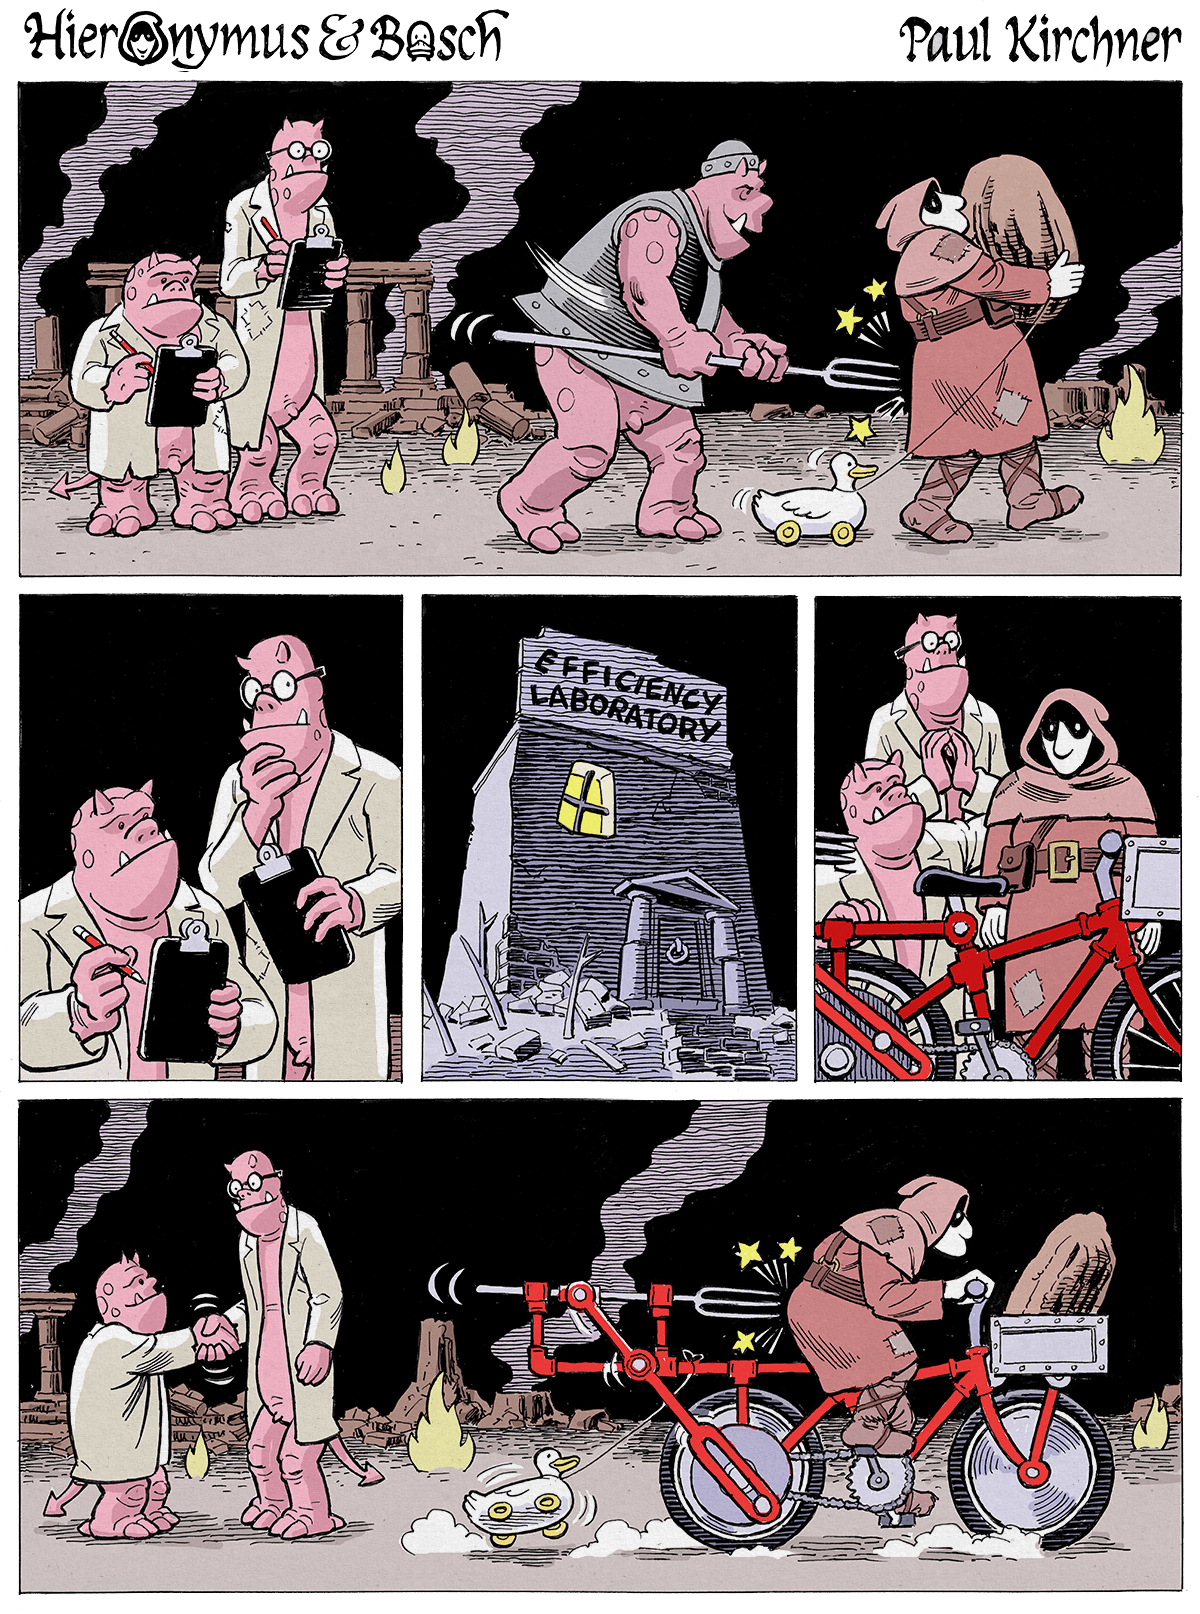 Hieronymus & Bosch by paul-kirchner